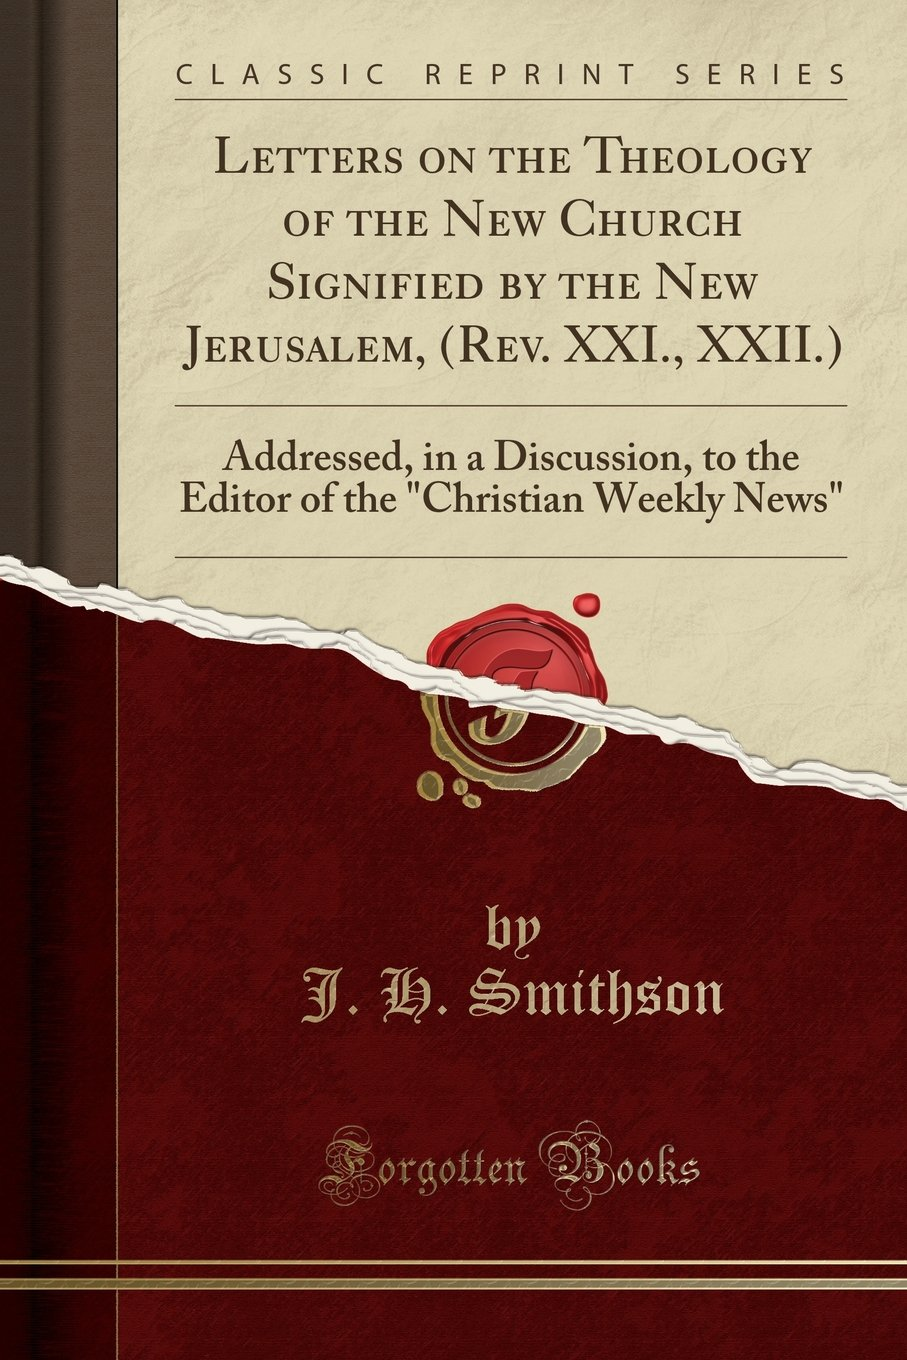 Read Online Letters on the Theology of the New Church Signified by the New Jerusalem, (Rev. XXI, XXII.): Addressed, in a Discussion, to the Editor of the Christian Weekly News (Classic Reprint) ebook